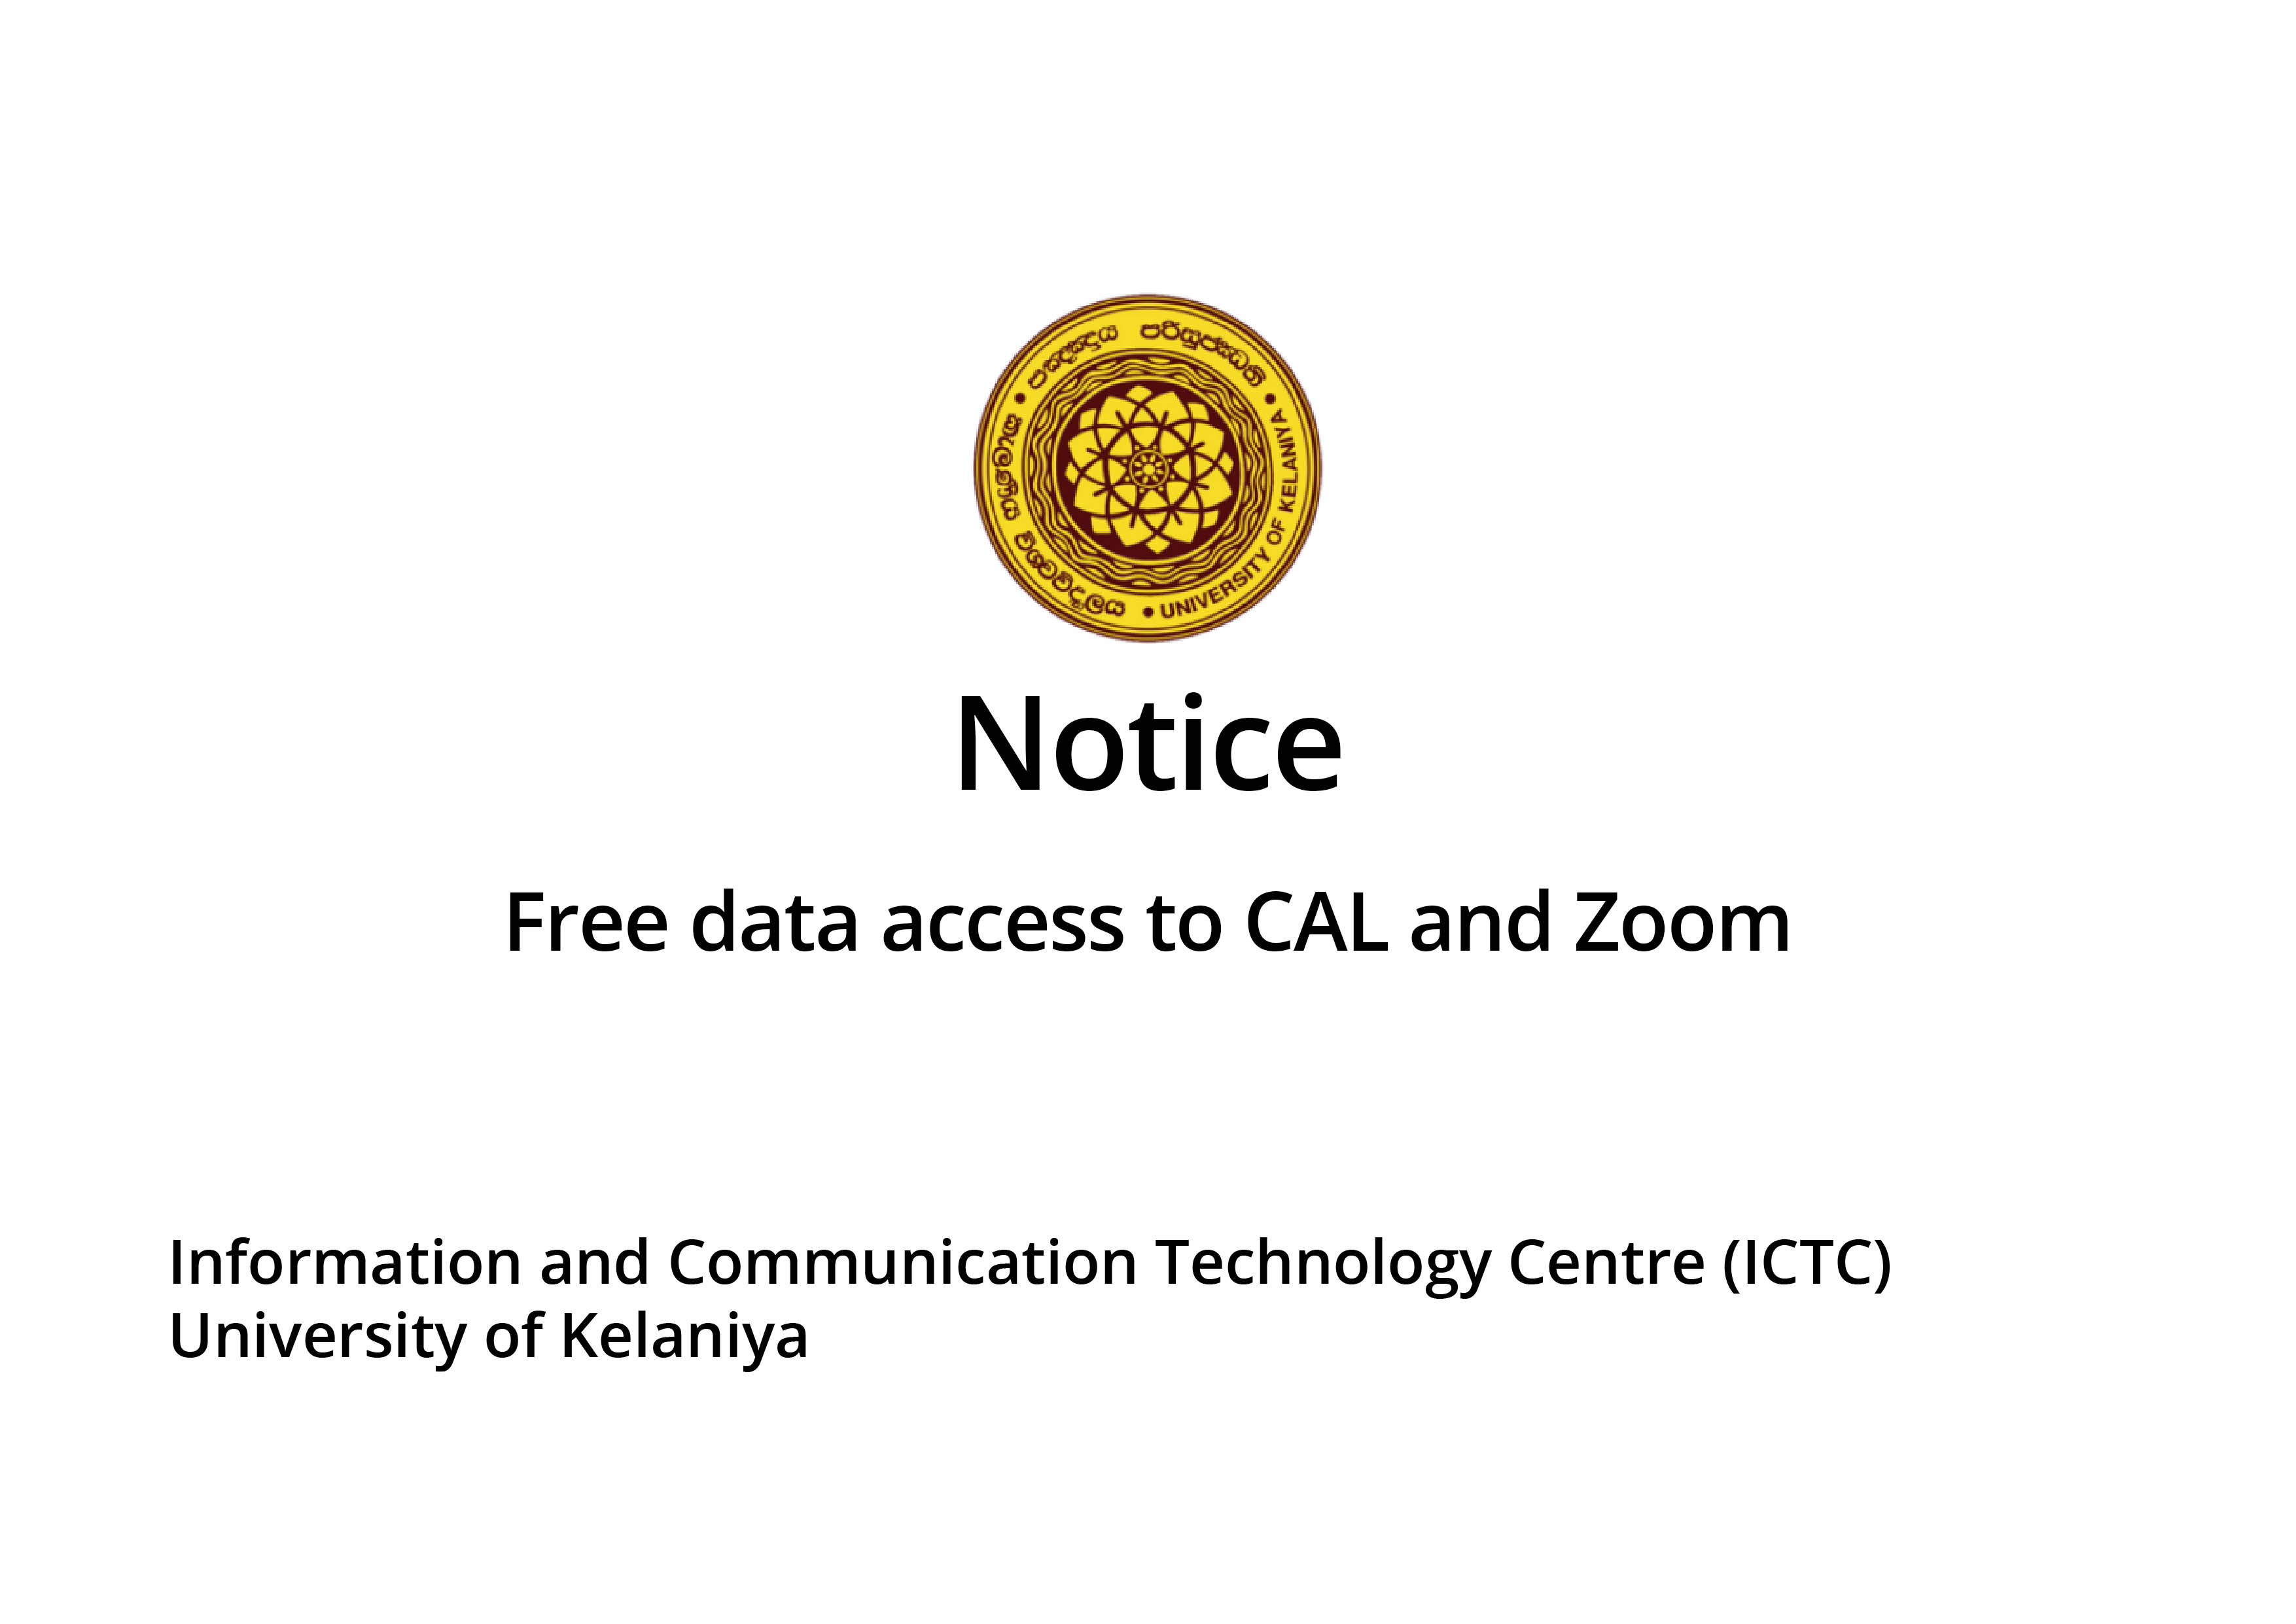 Free data to access CAL and Zoom